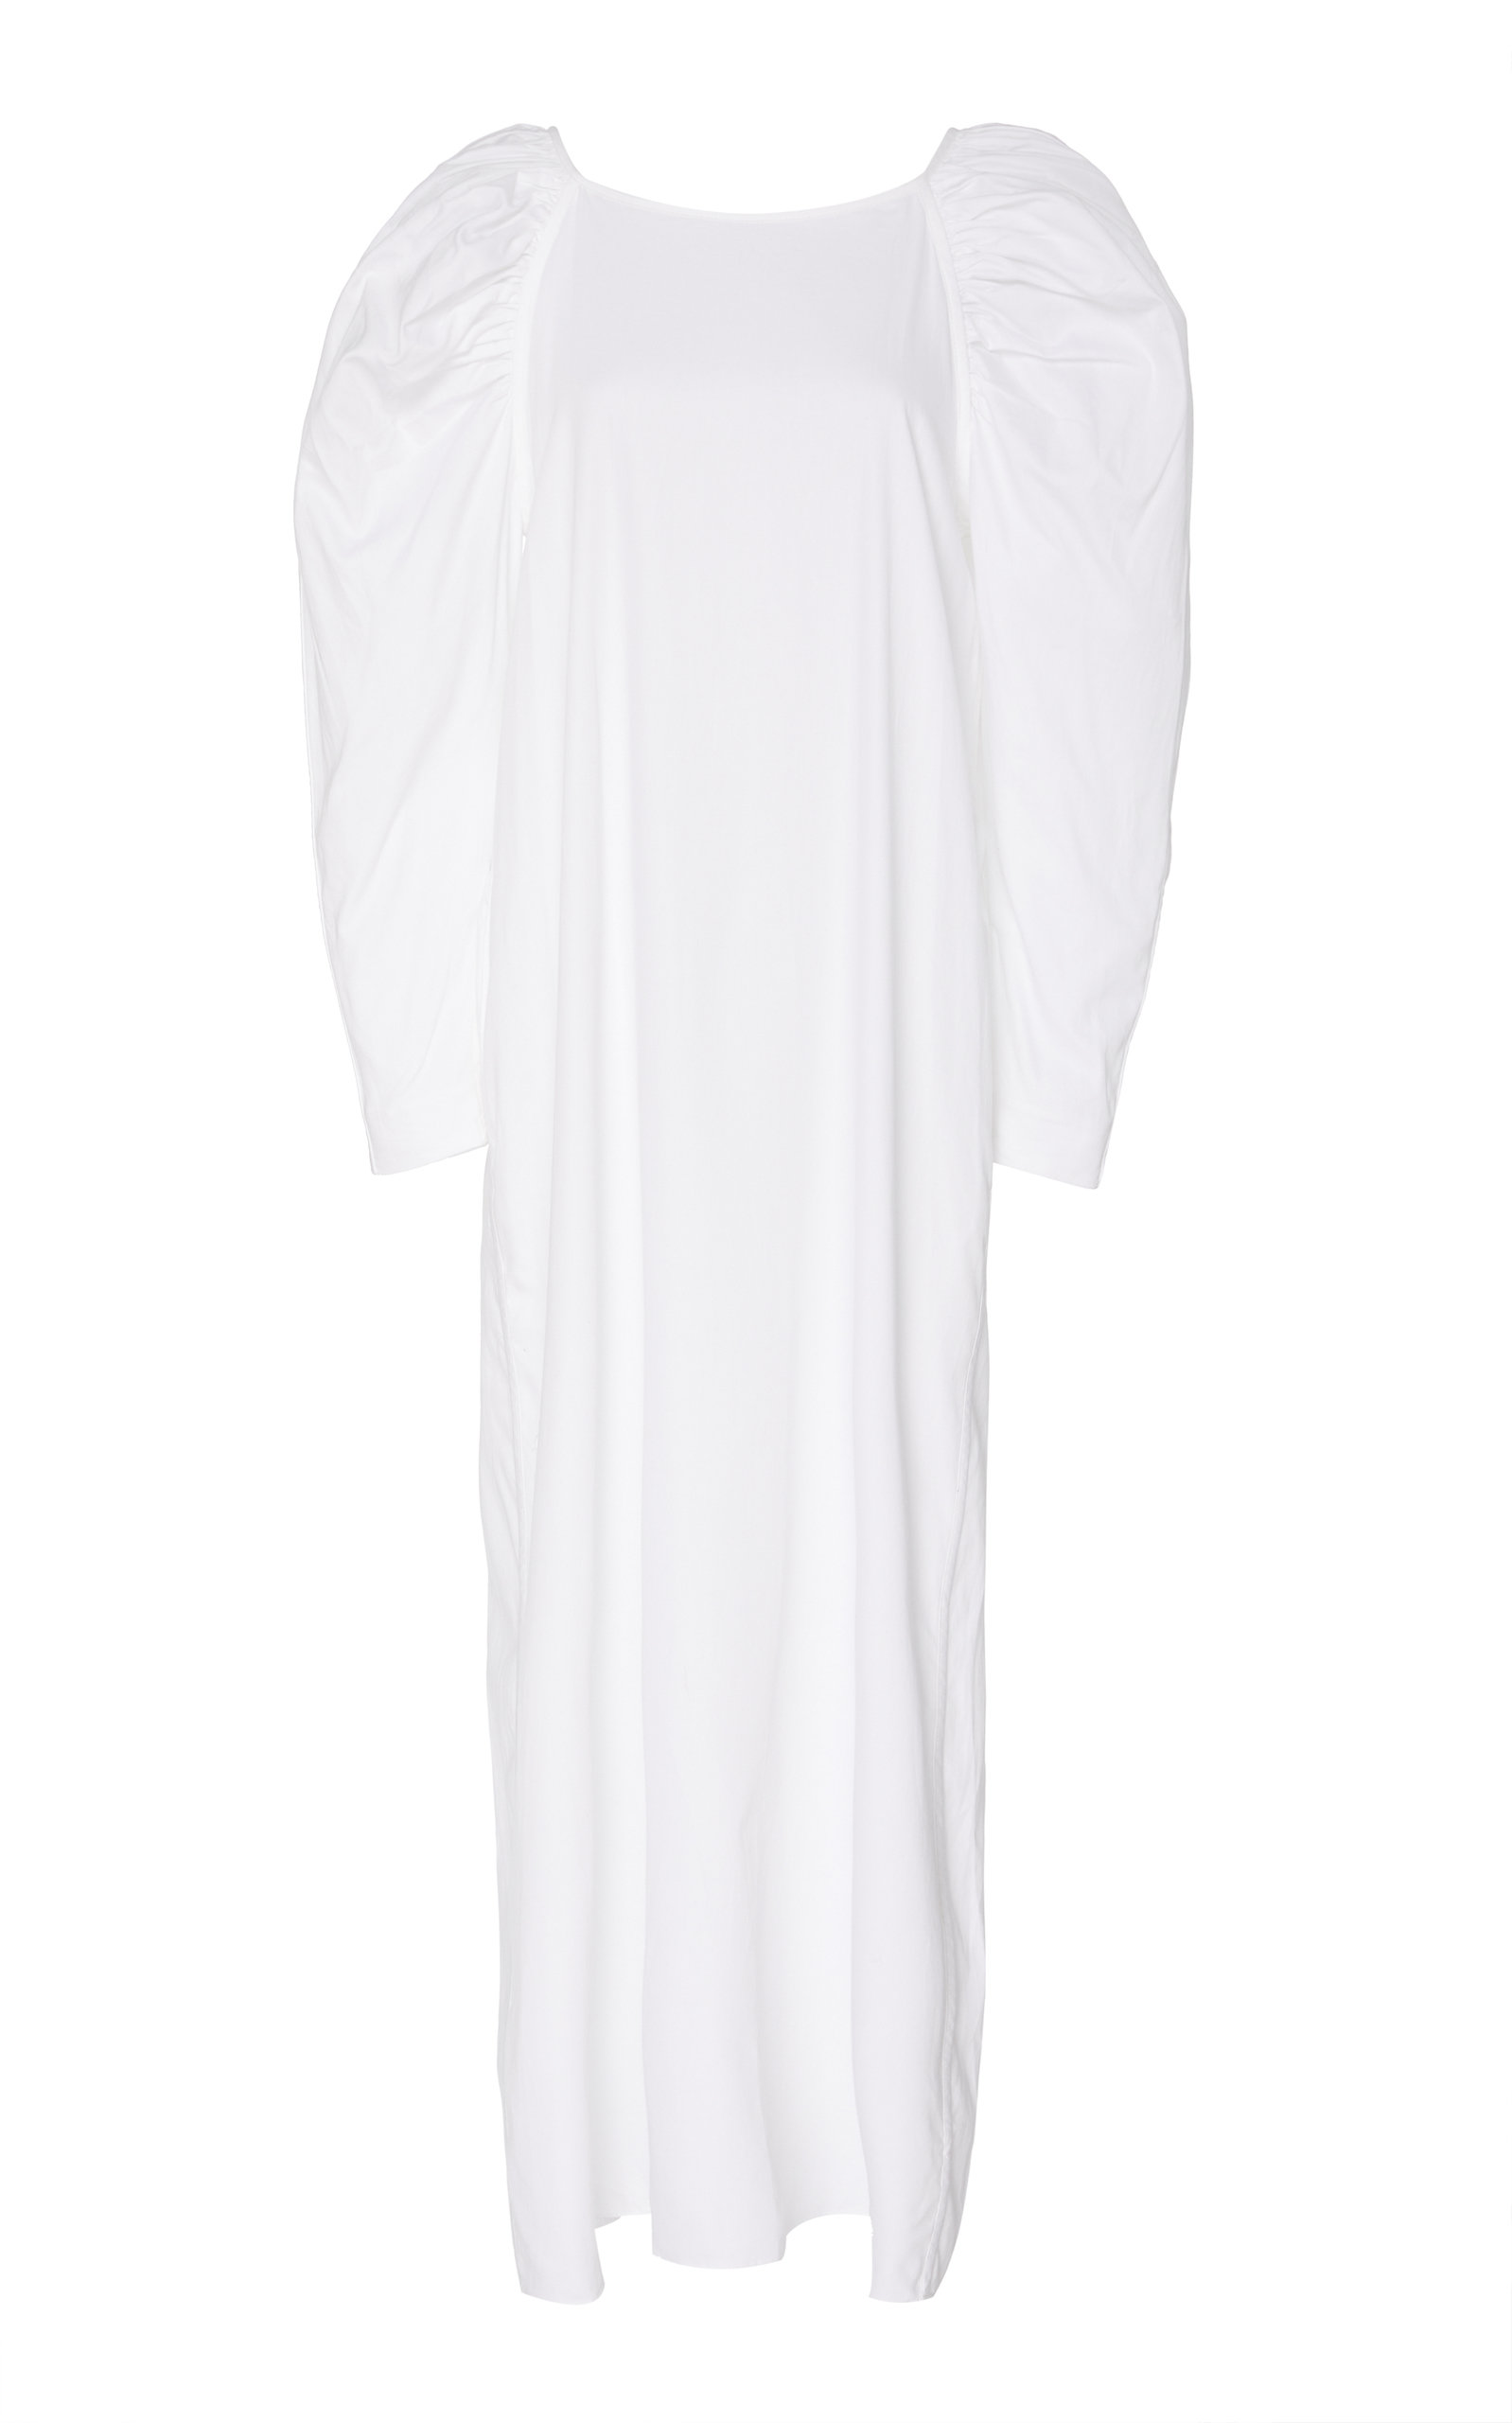 Buy Mara Hoffman Elisabetta Mutton Cotton Midi Dress online, shop Mara Hoffman at the best price